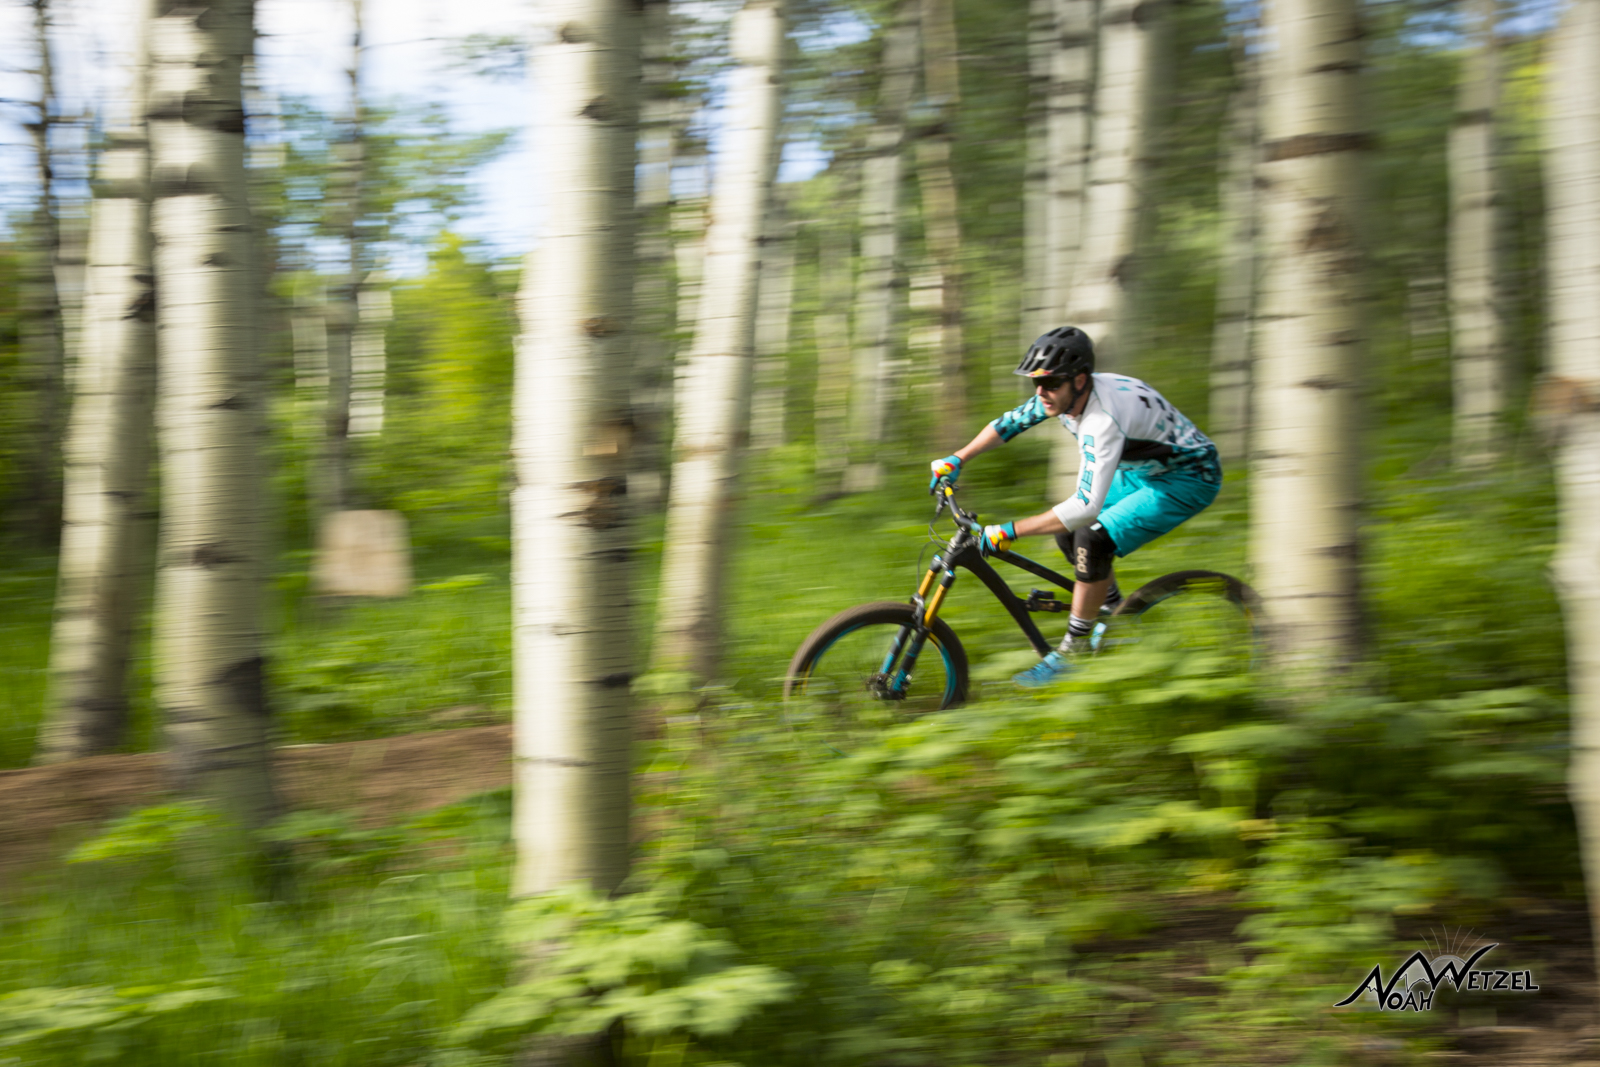 Justin Reiter cruising through the Aspens on NPR on Emerald Mtn.